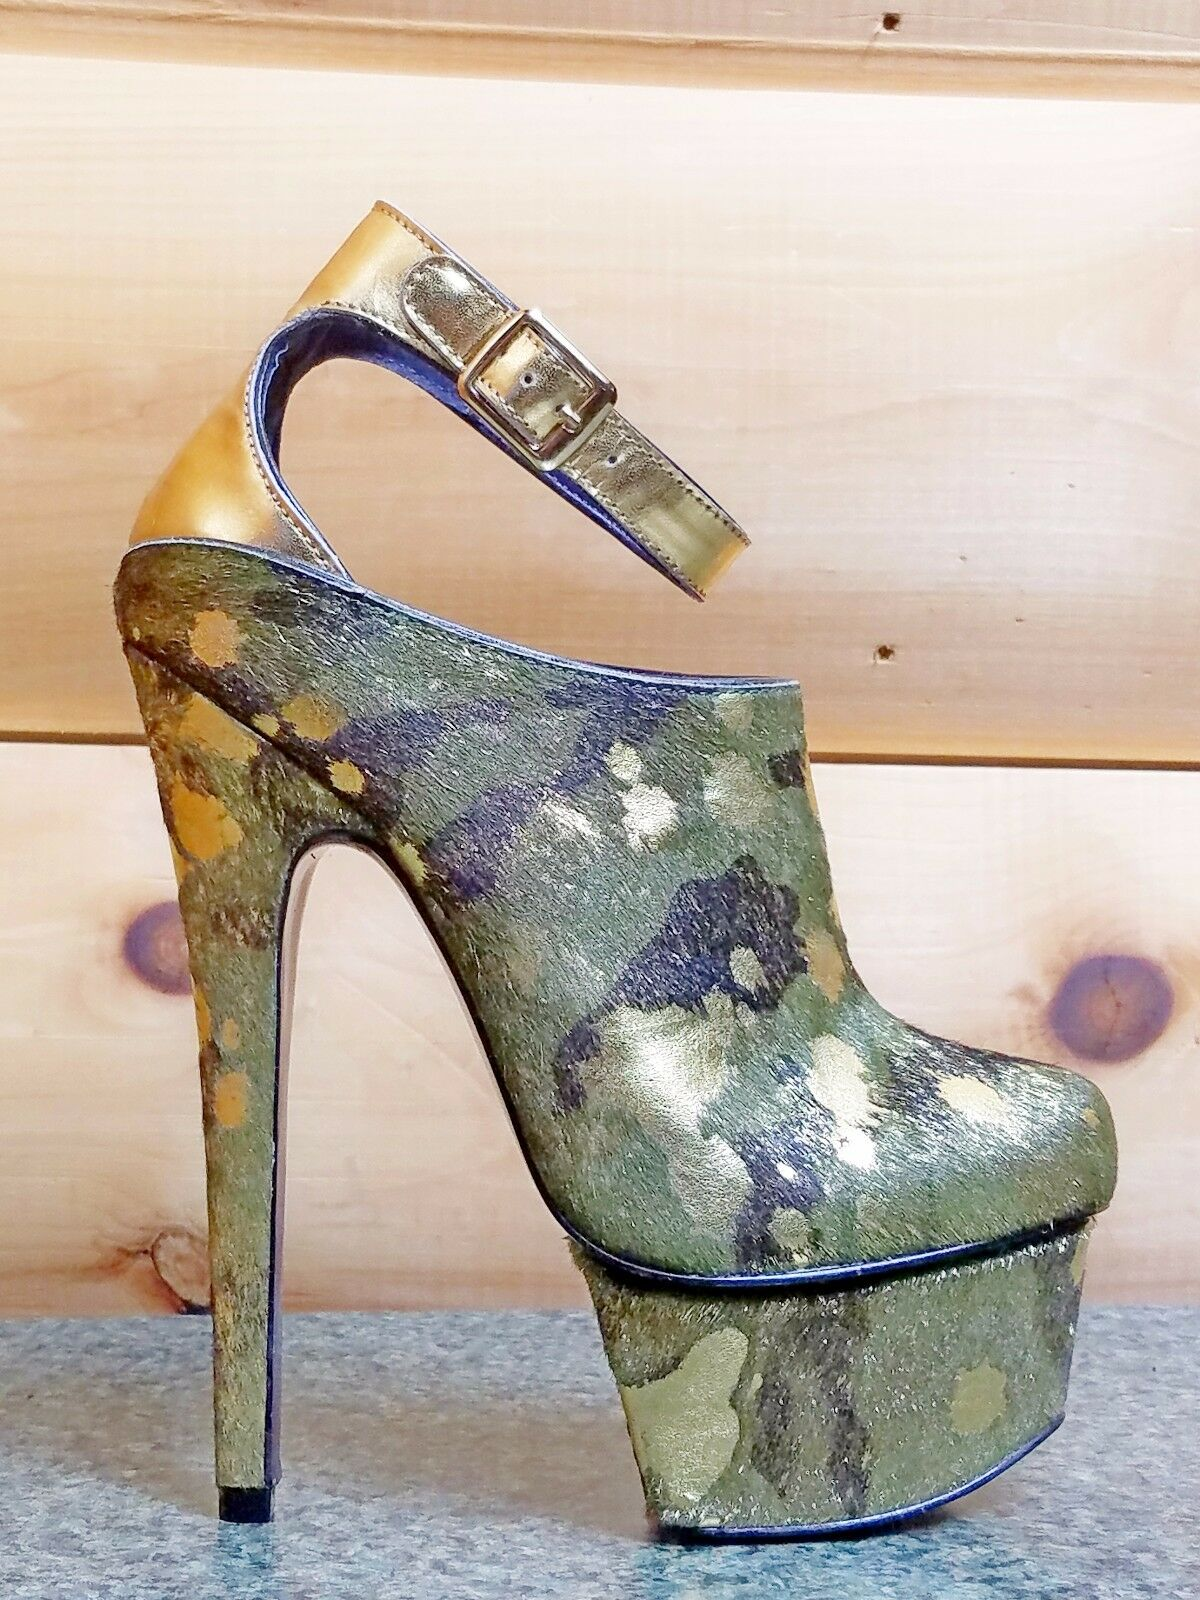 Zigi NYs London Trash Wynne Camo Army gold Pony Fur Platform High Heel shoes